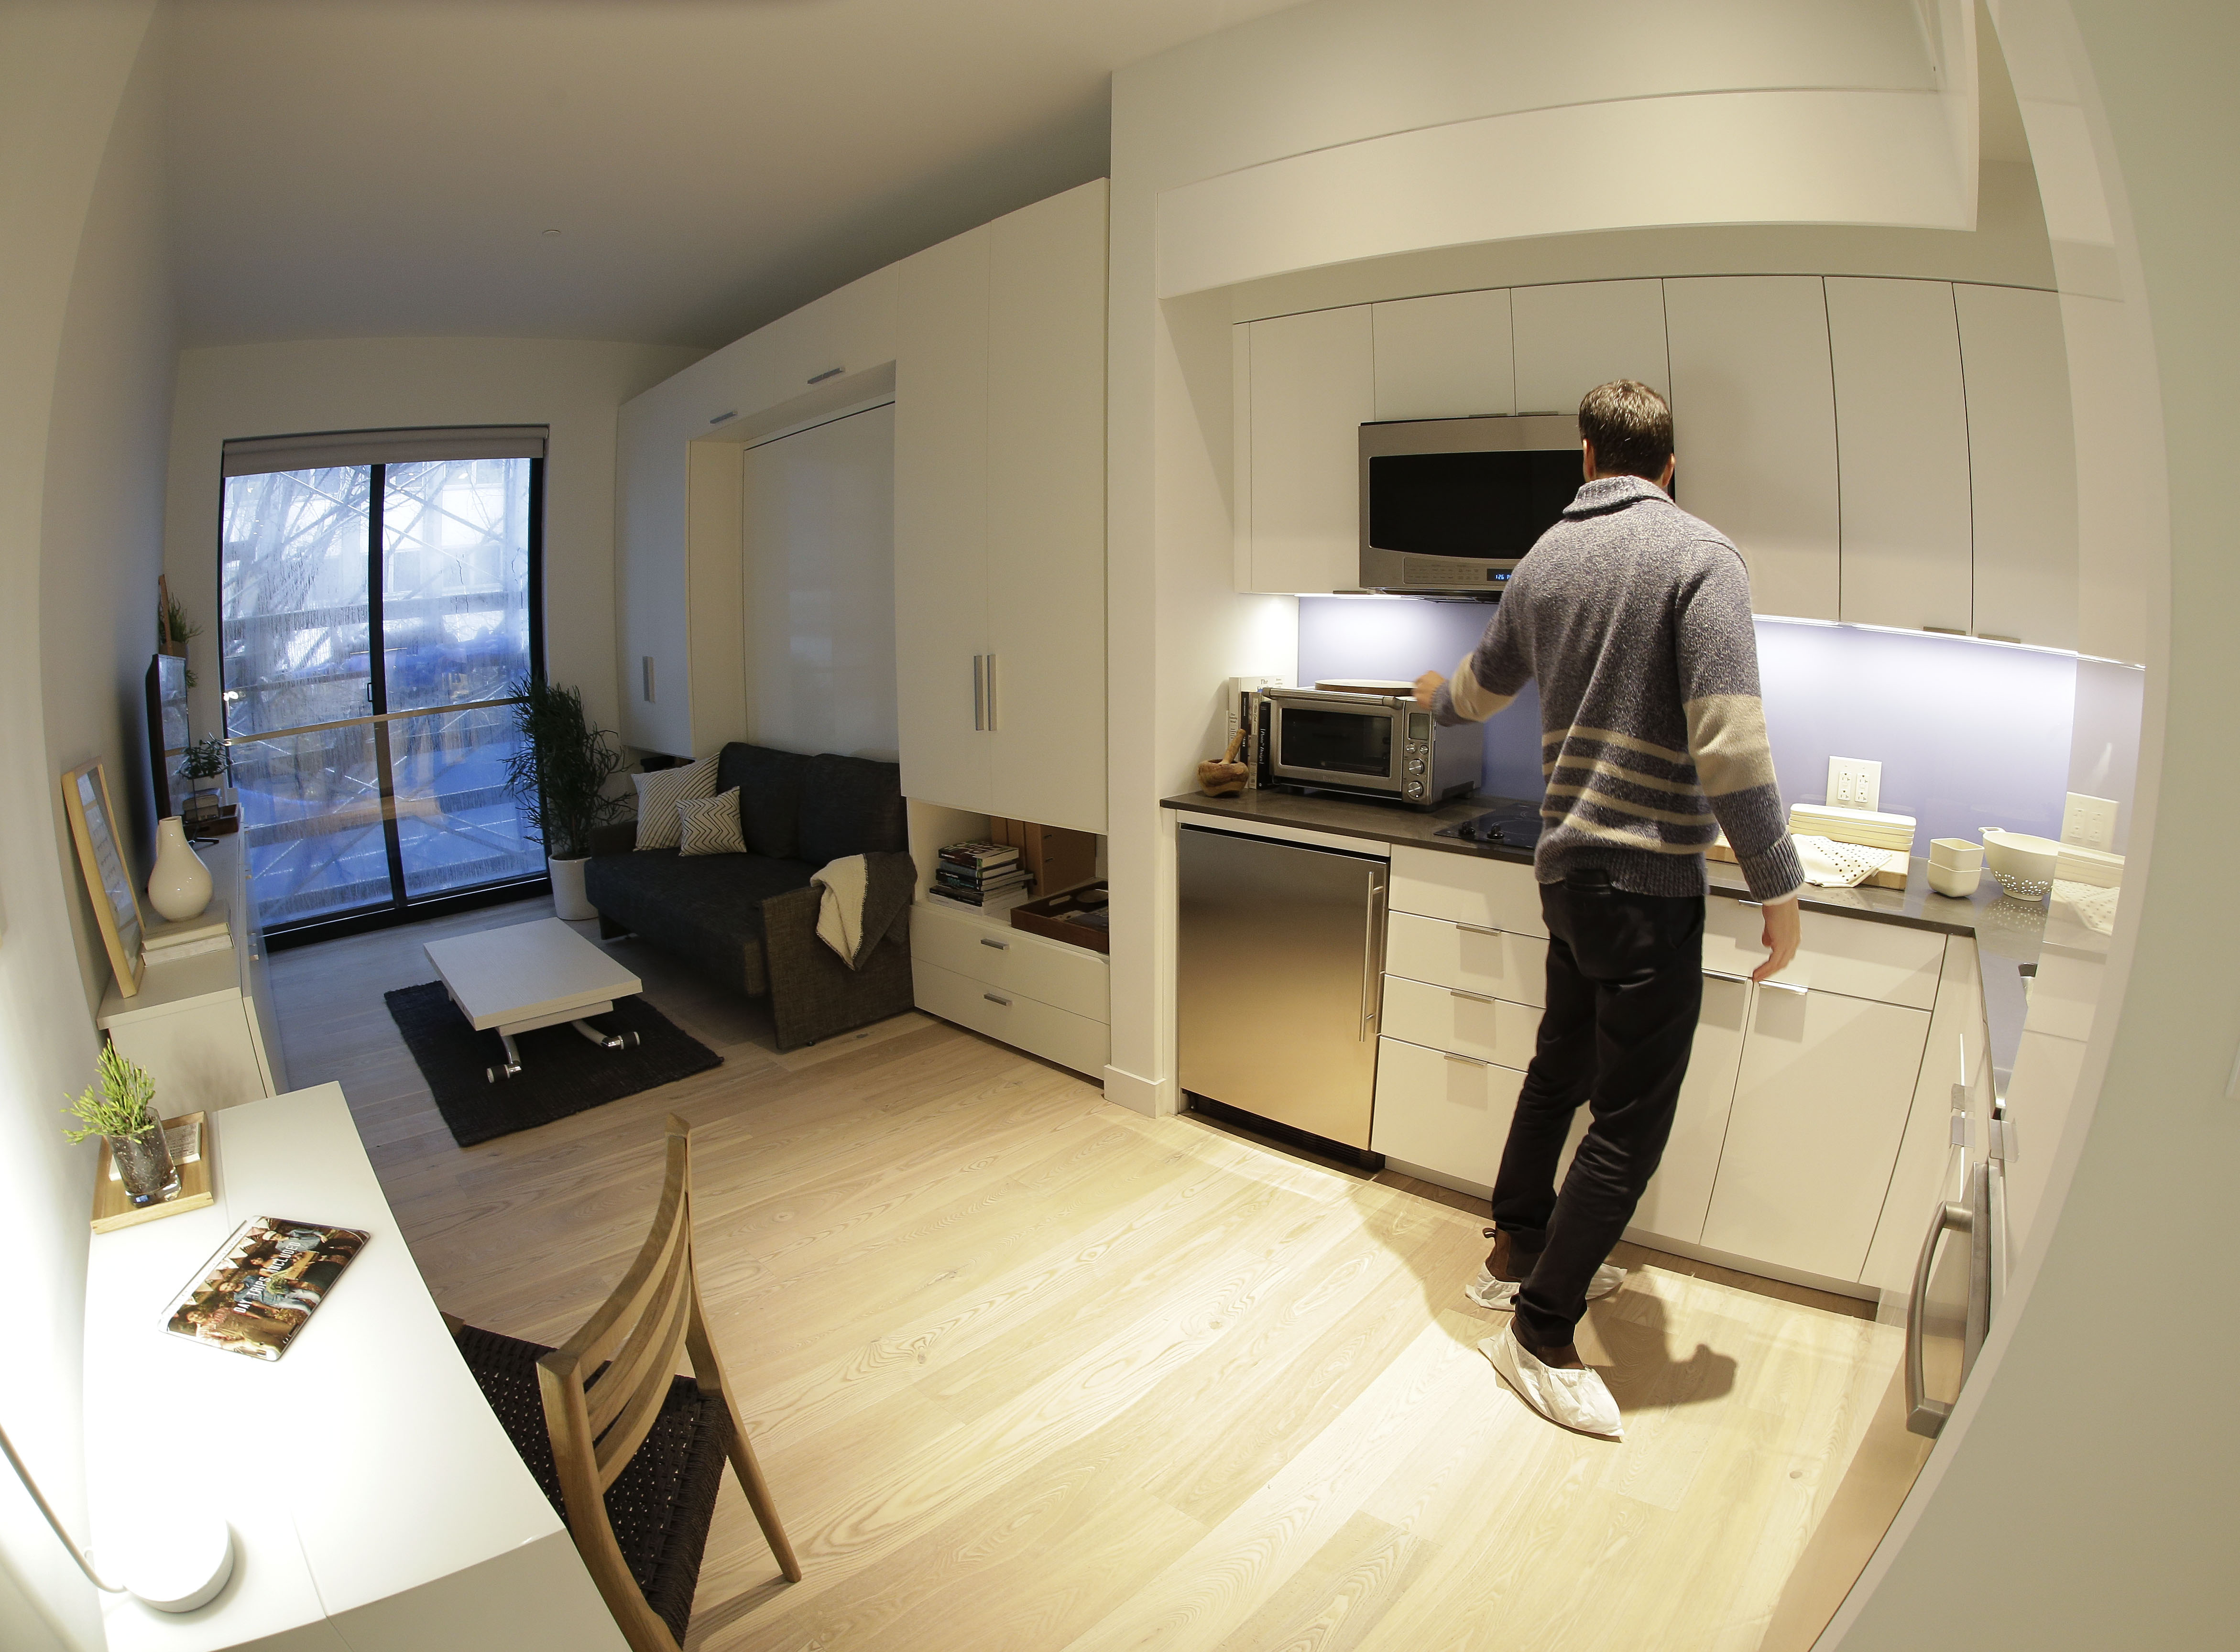 new york city may see more micro apartments cbs news. Black Bedroom Furniture Sets. Home Design Ideas